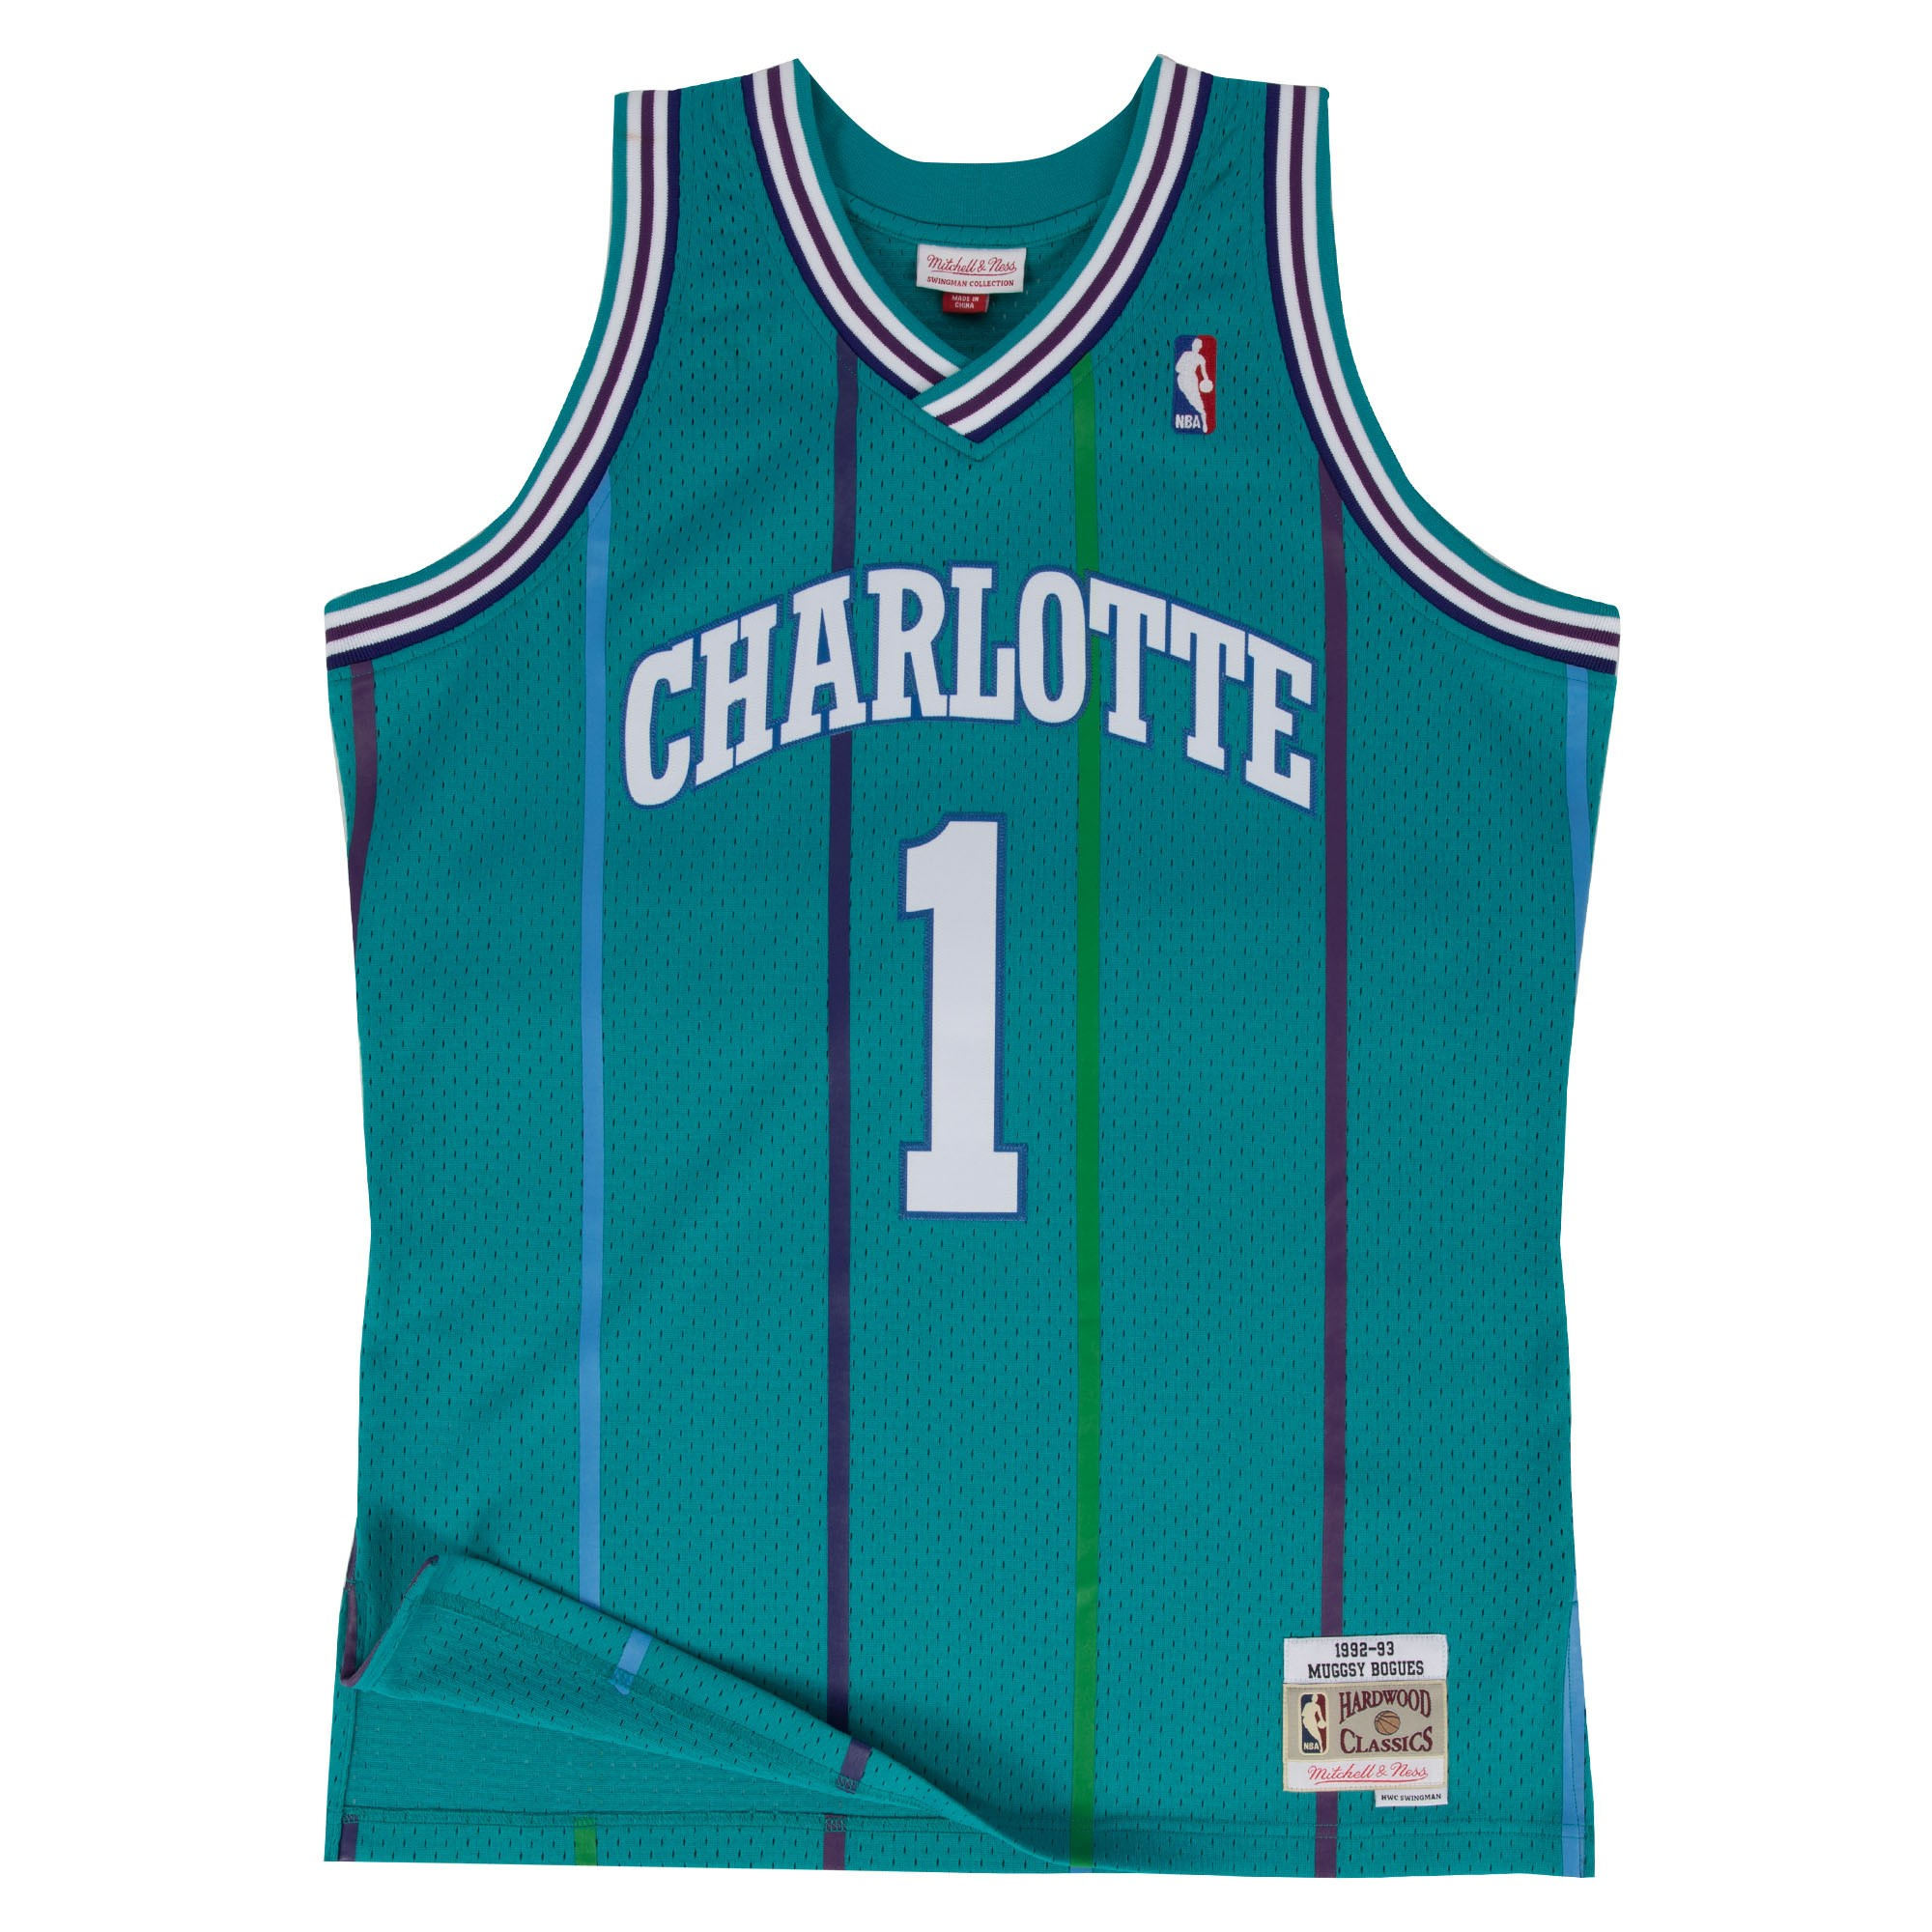 4b094660d33c Details about Muggsy Bogues Charlotte Hornets NBA Mitchell   Ness Youth  Swingman Jersey